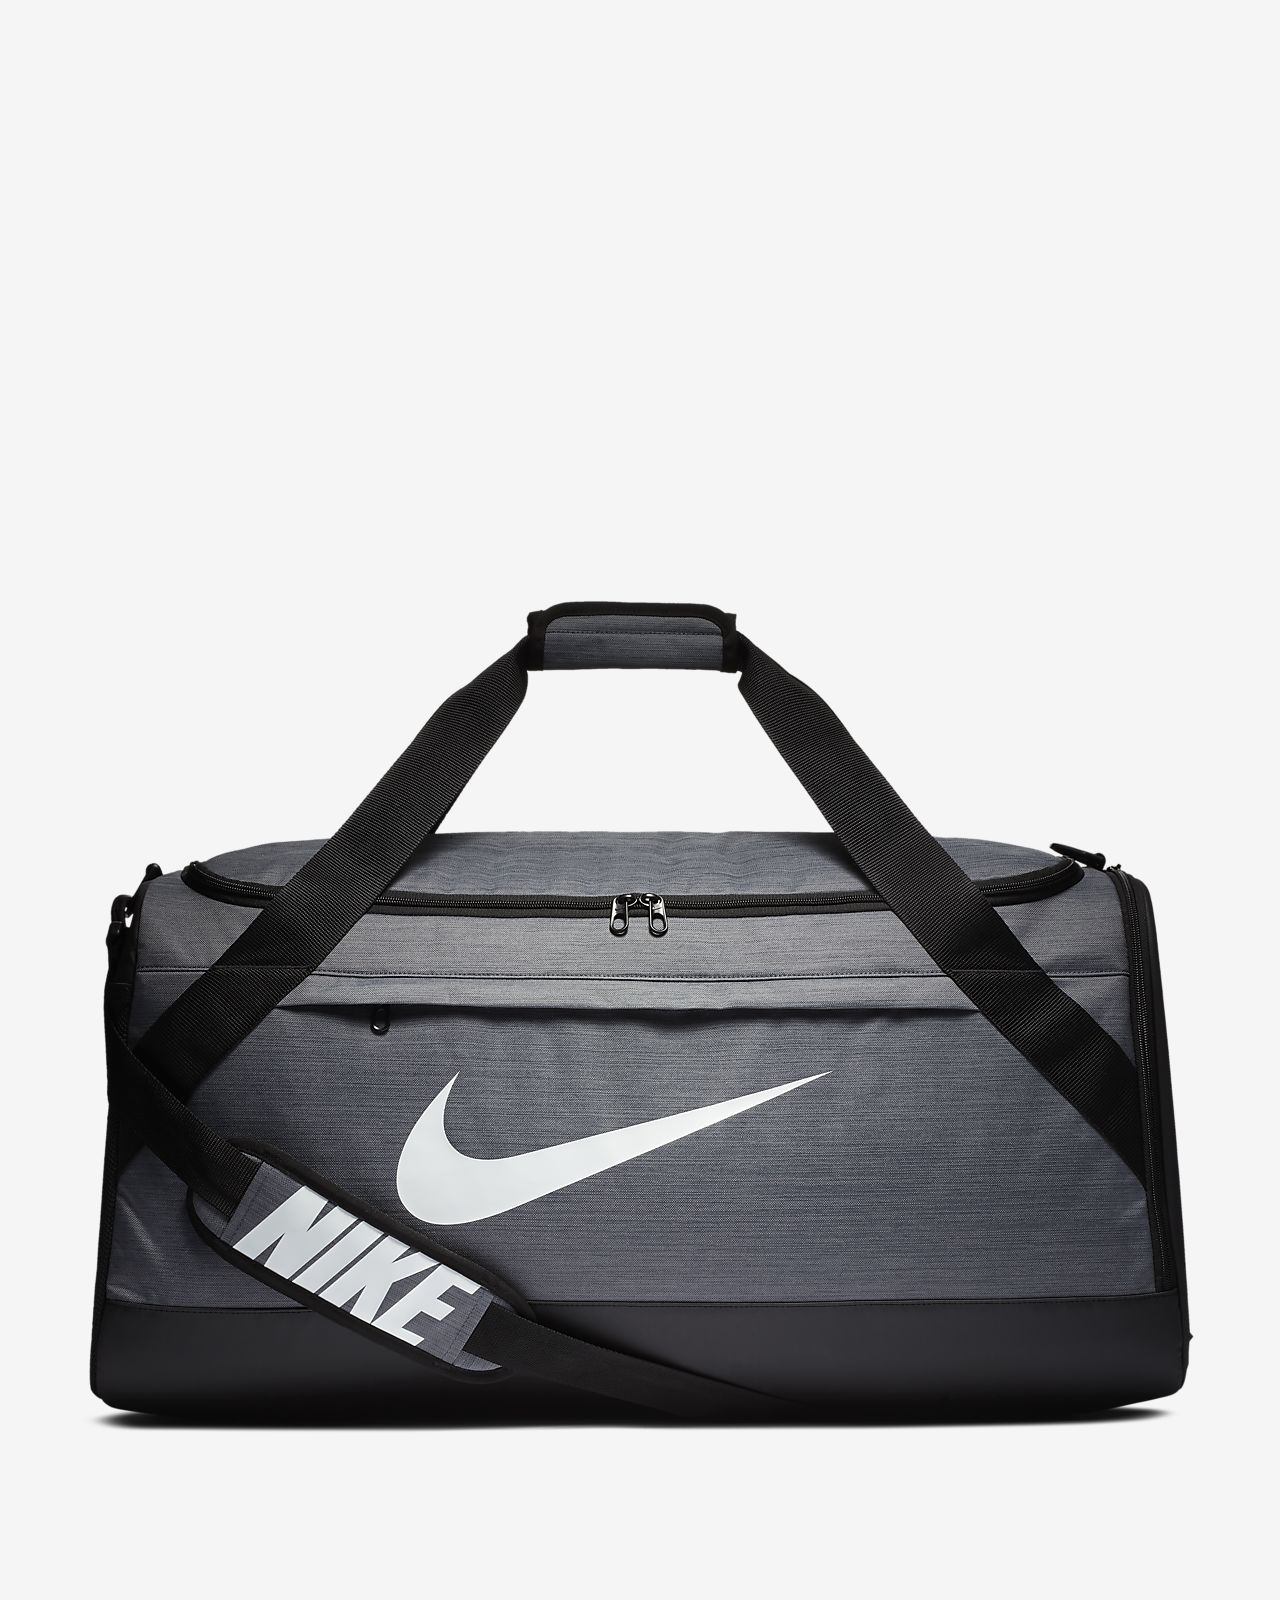 711f13e0c3fb Nike Brasilia Training Duffel Bag (Large). Nike.com